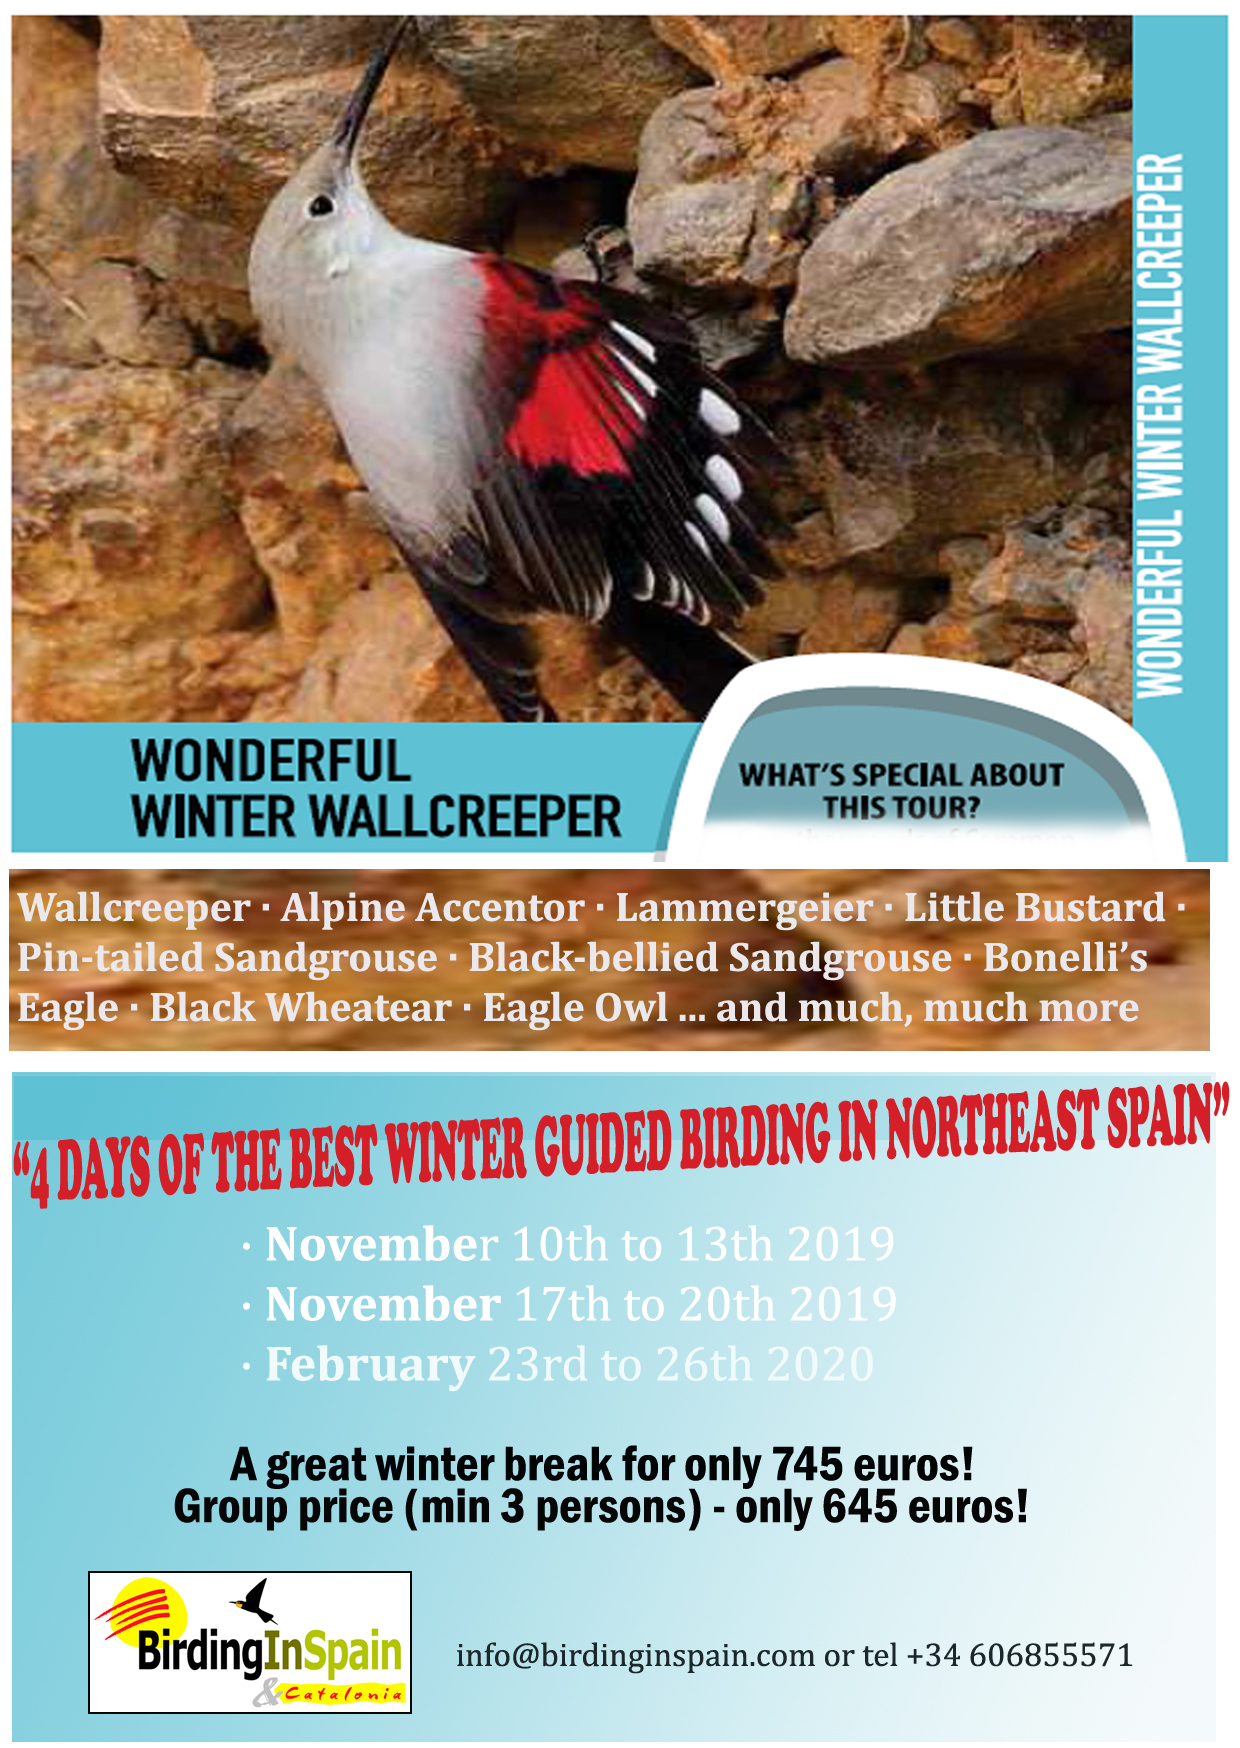 Wonderful Winter Wallcreeper Tour